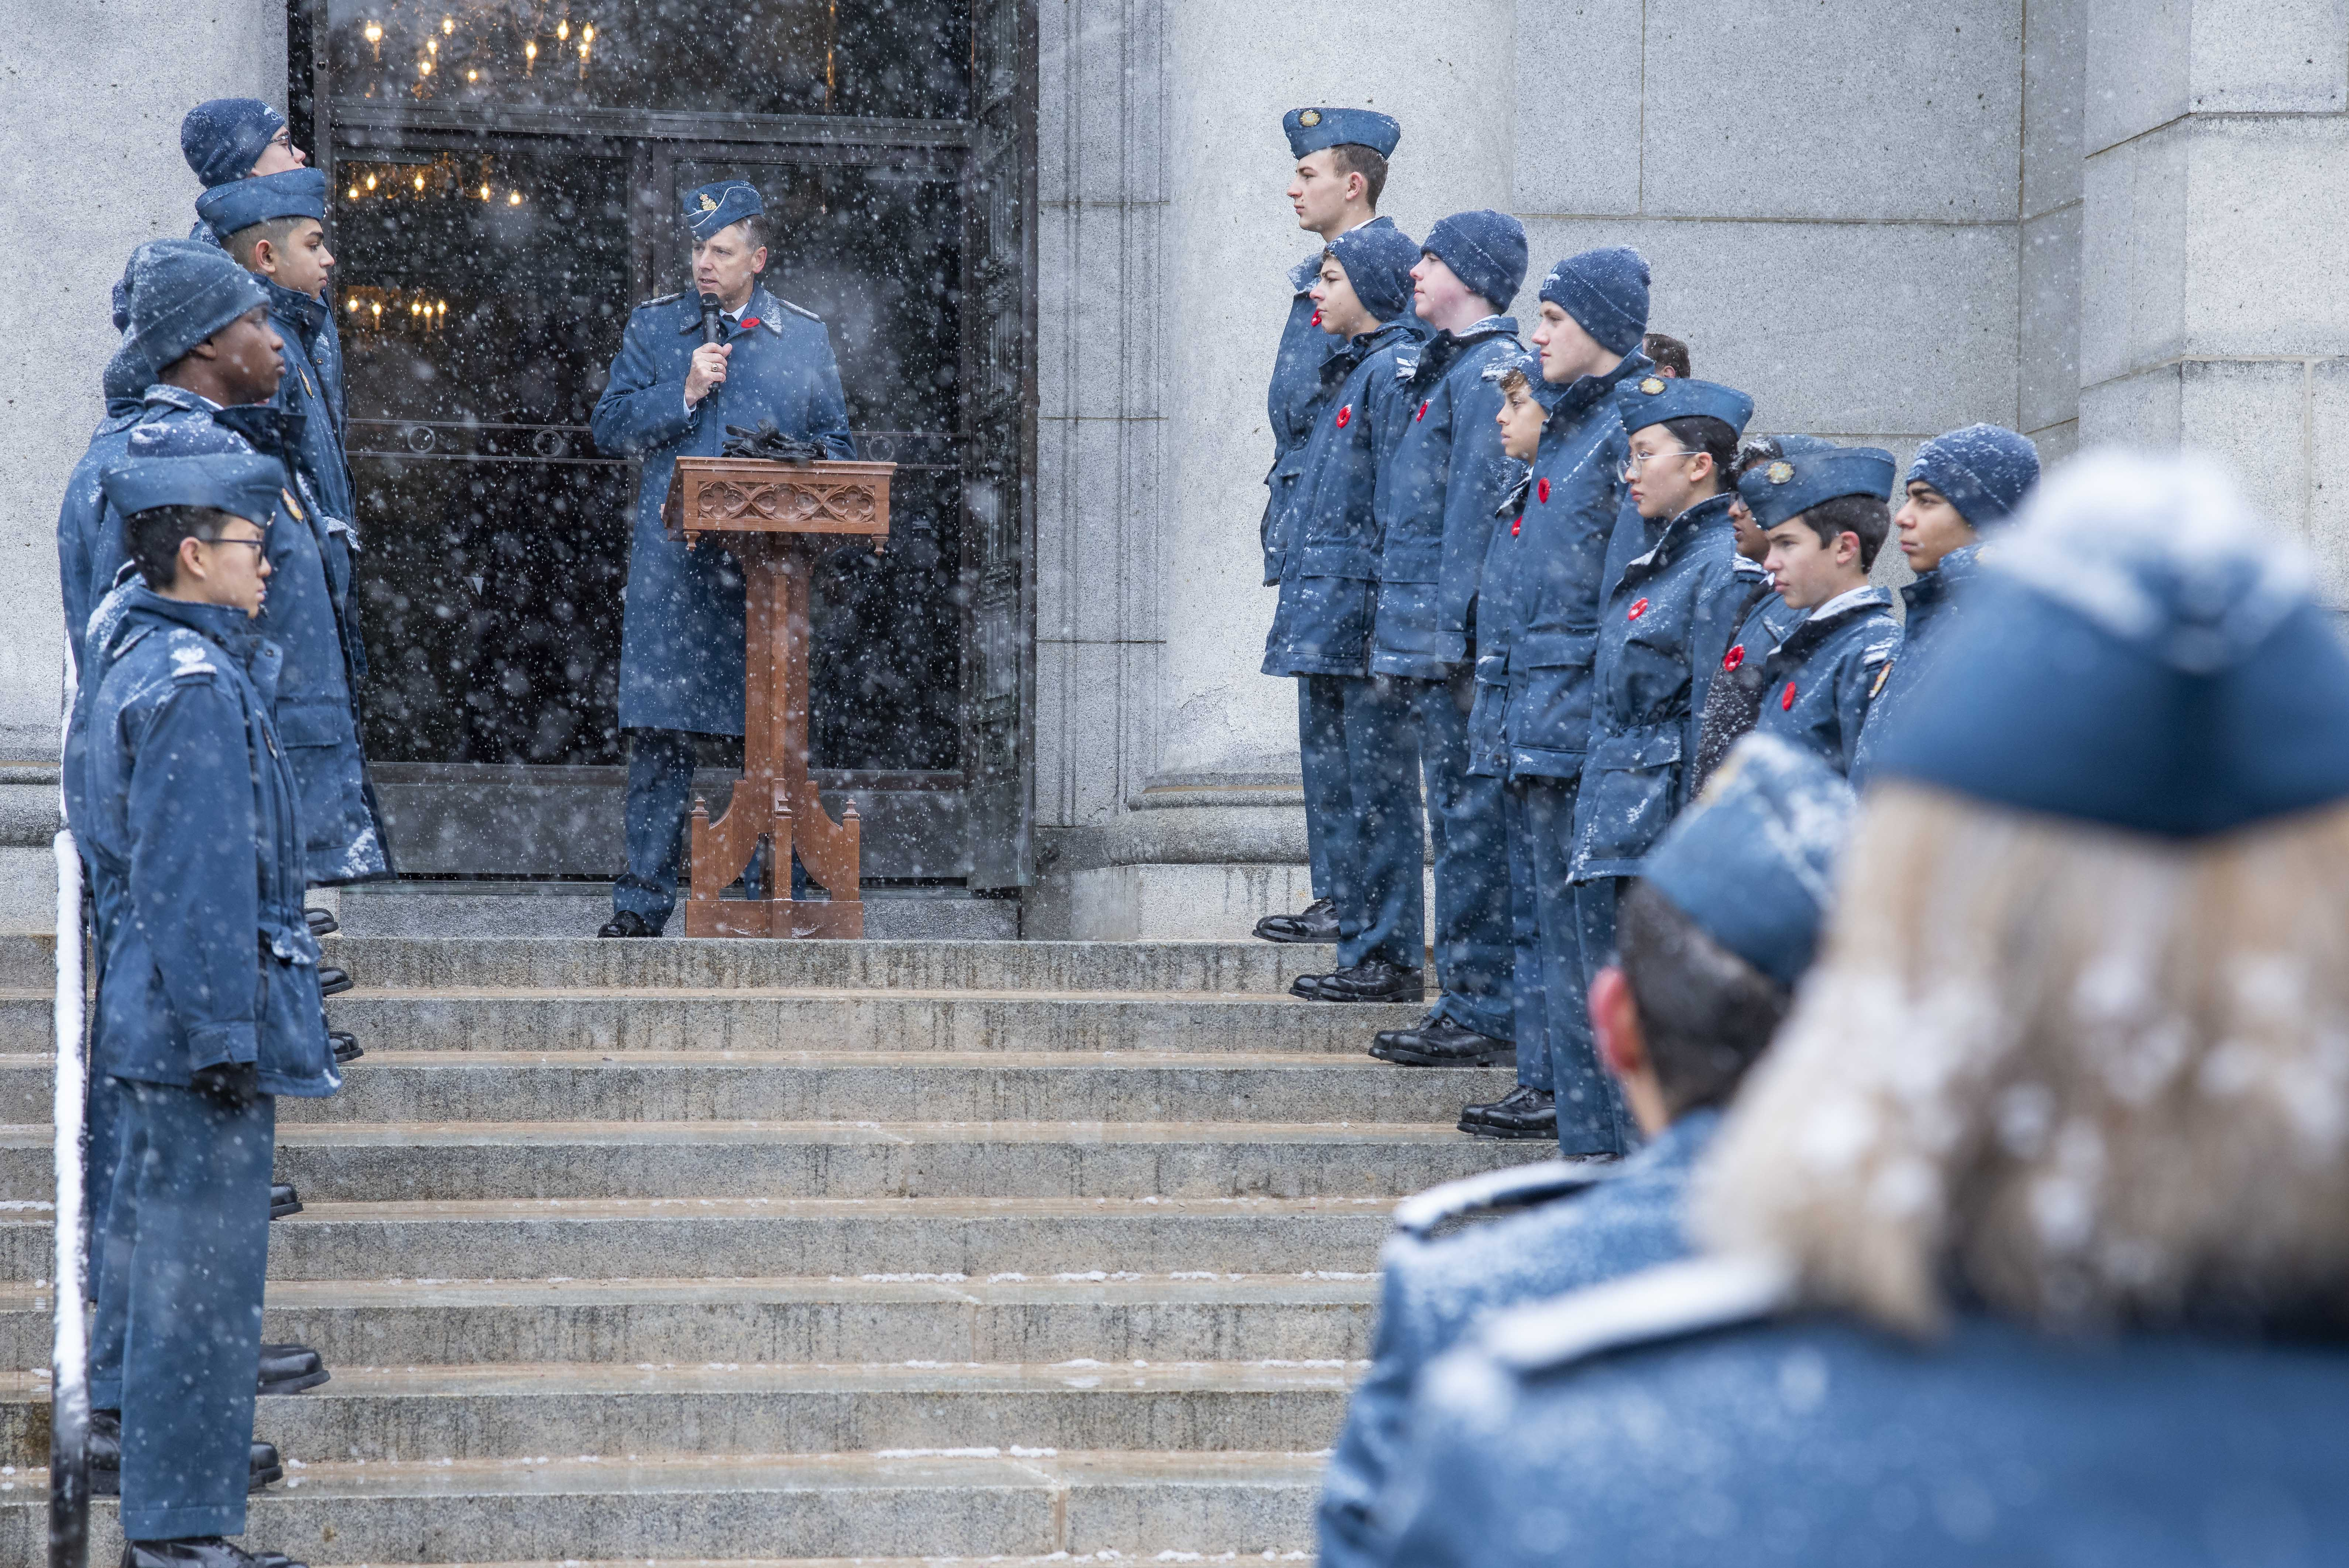 Lieutenant General Al Meinzinger, commander of the Royal Canadian Air Force, speaks during the 2019 Remembrance Day ceremony held at the mausoleum where Wing Commander William Barker, VC, is interred in Mount Pleasant Cemetery, Toronto. Royal Canadian Air Cadets line the steps leading up to the mausoleum. PHOTO: Corporal Lynette Ai Dang, BM10-2019-0359-016